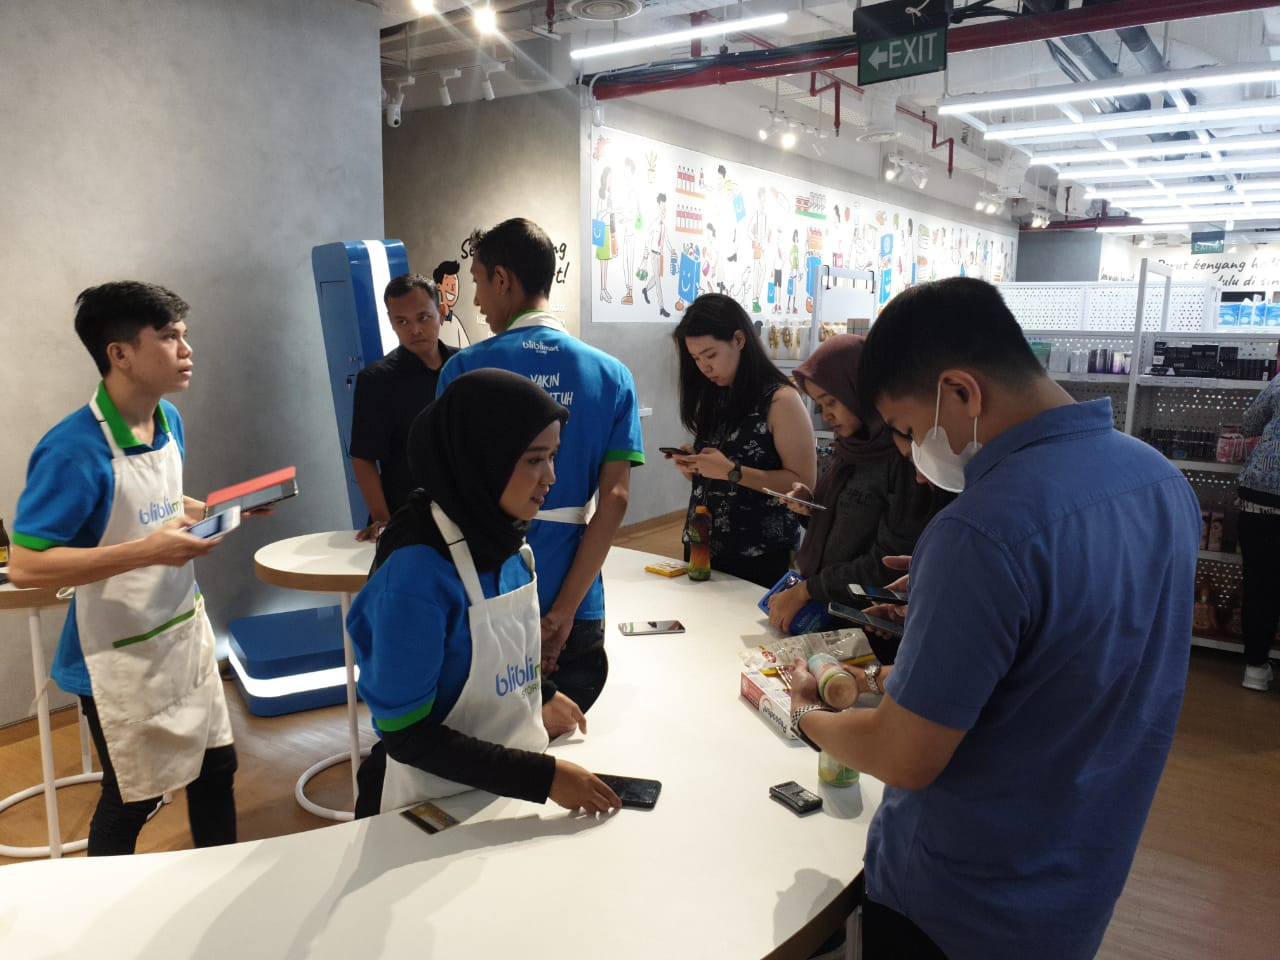 BlibliMart store from Blibli.com uses a cashless and cashier-less shopping system, with shopkeepers ready to assist customers and check their purchases after the payment is made. Image: JP/Moch. Fiqih Prawira